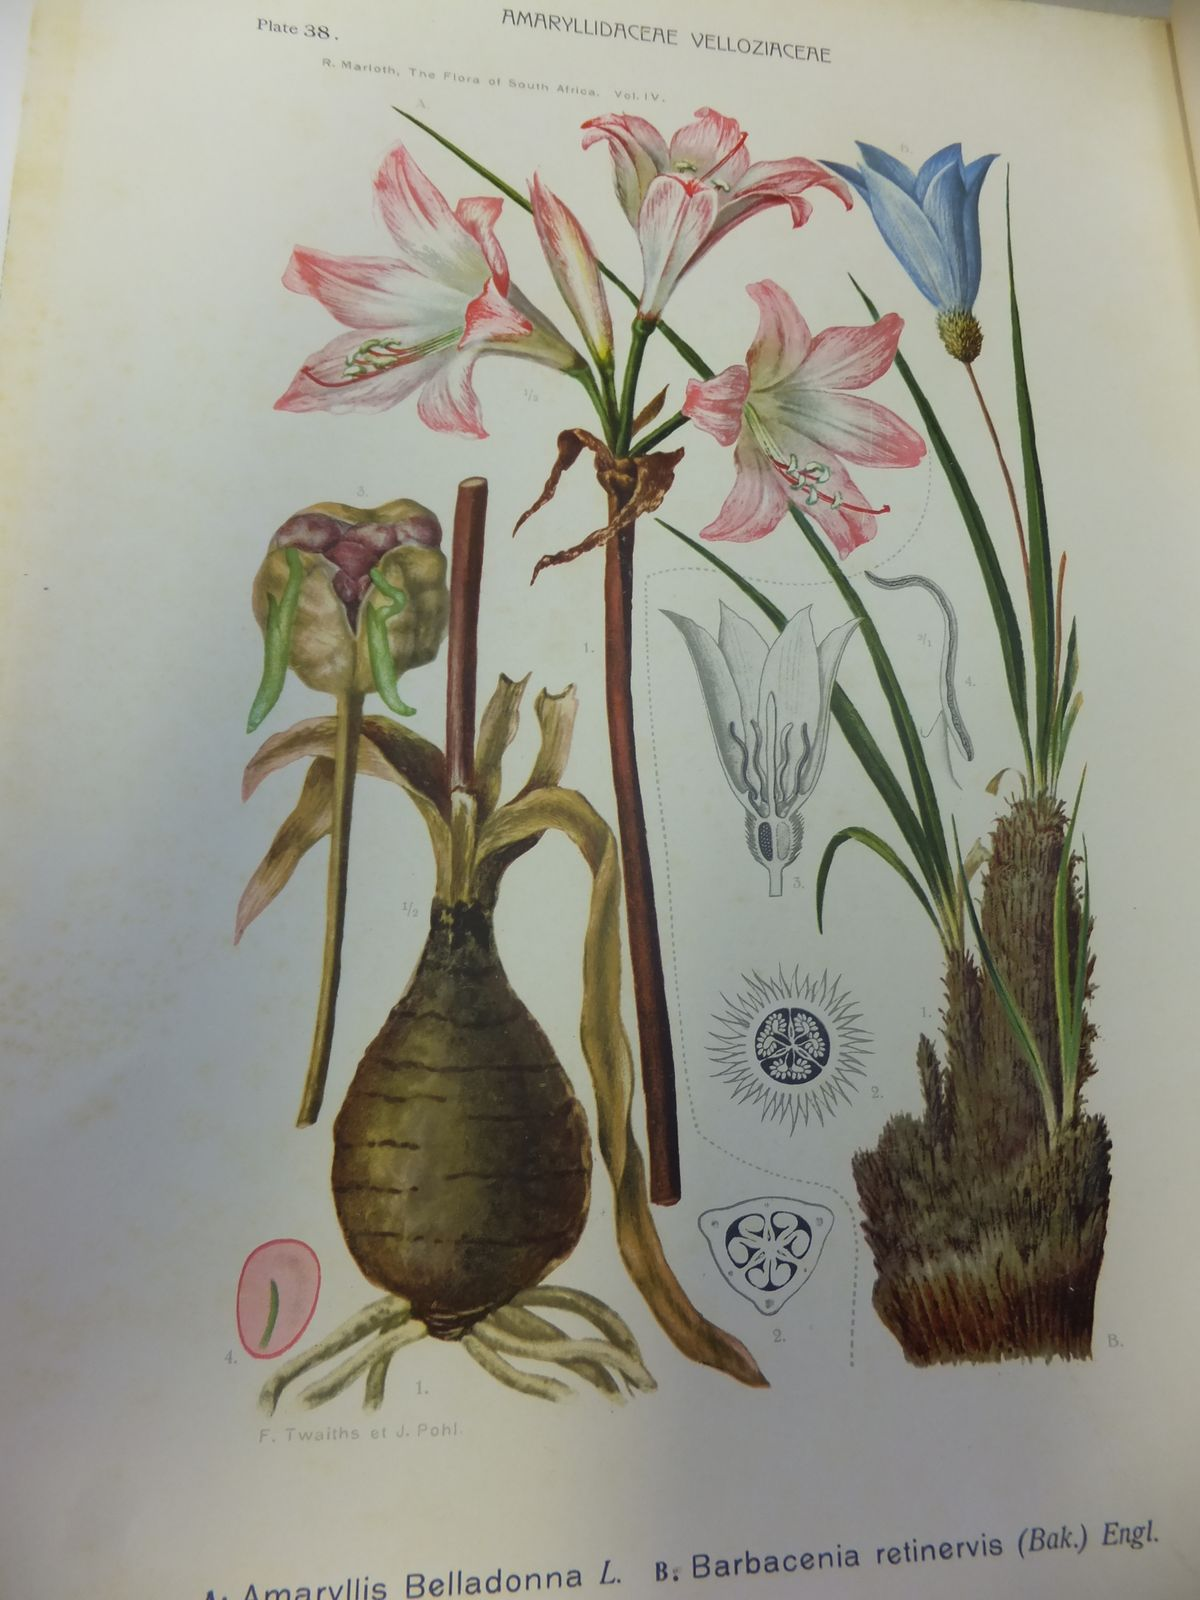 Photo of THE FLORA OF SOUTH AFRICA WITH SYNOPTICAL TABLES OF THE GENERA OF THE HIGHER PLANTS (6 VOLUMES) written by Marloth, Rudolf published by William Wesley & Son (STOCK CODE: 1809276)  for sale by Stella & Rose's Books